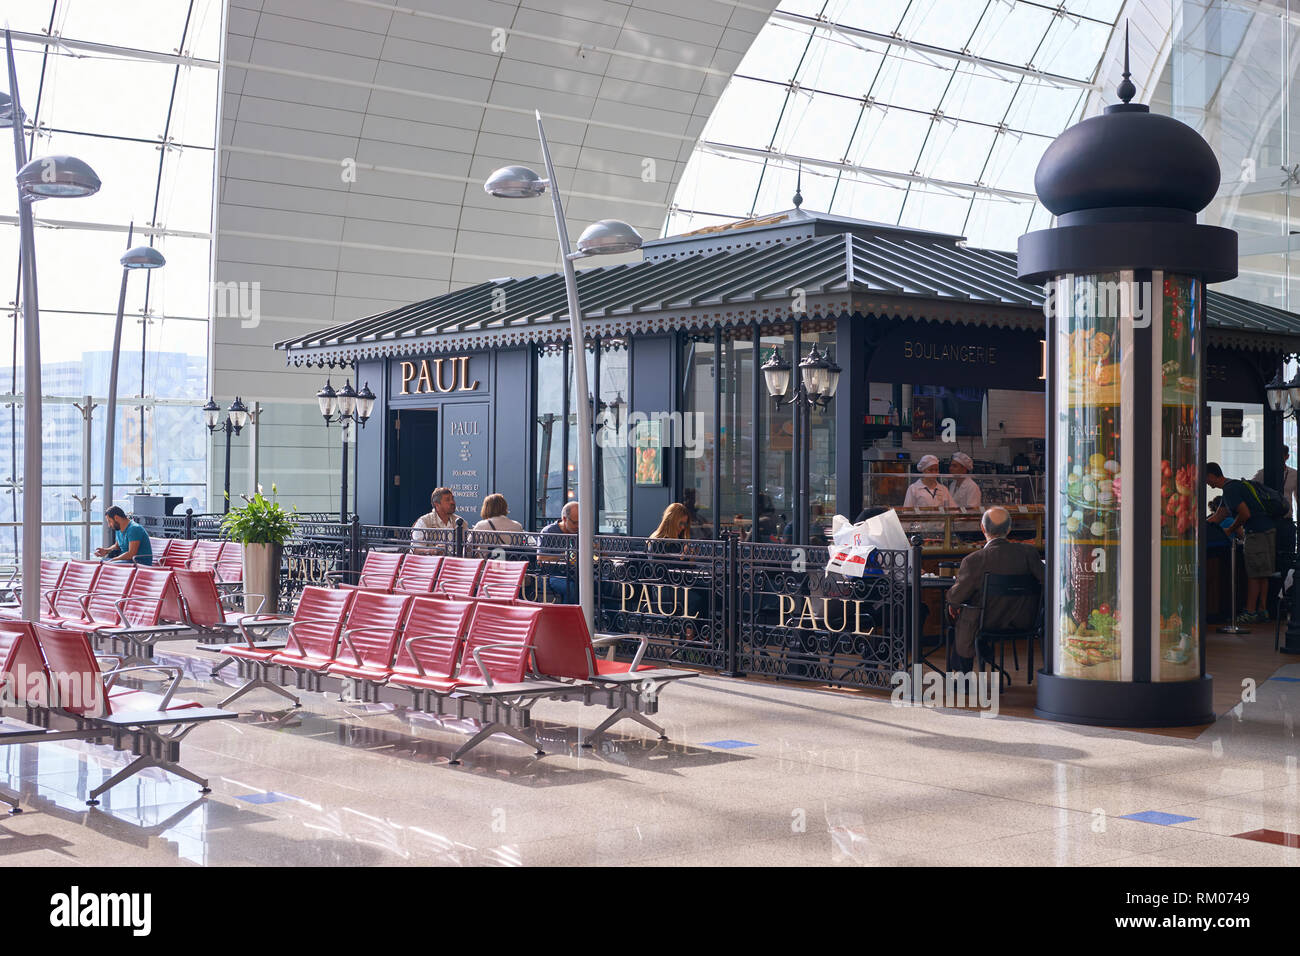 DUBAI, UAE - CIRCA NOVEMBER, 2016: Paul at Dubai International Airport. Paul is a French chain of bakery/cafe restaurants. - Stock Image